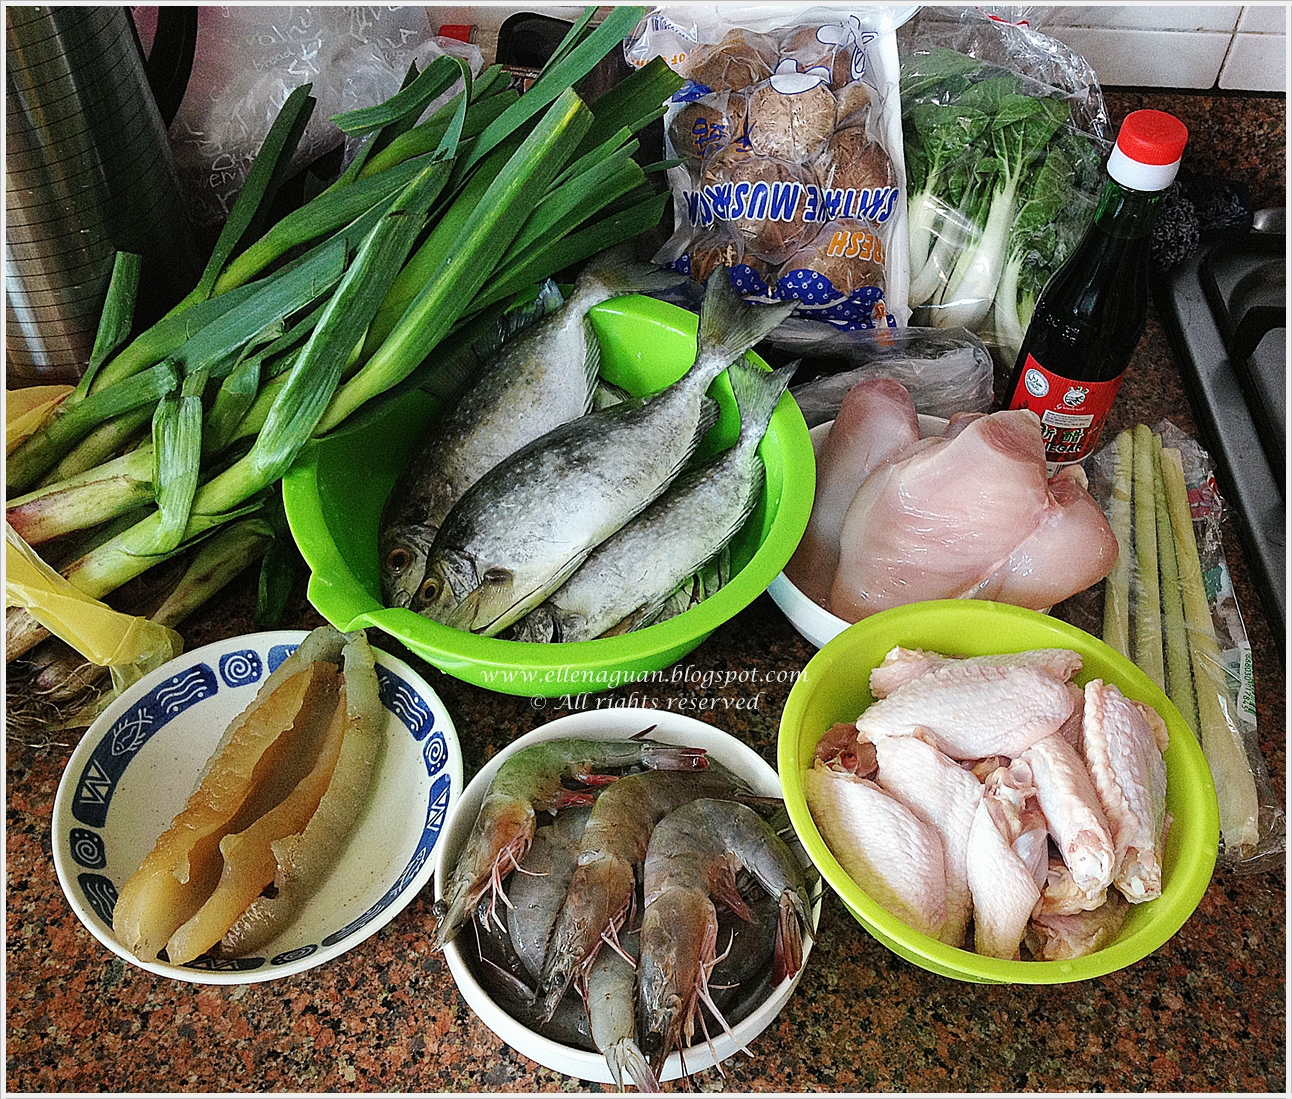 Cuisine paradise singapore food blog recipes reviews and travel i hope everyone enjoys the meal and i apologize if the dishes are not up to expectations due to my clumsy hands and mind in the kitchen forumfinder Choice Image